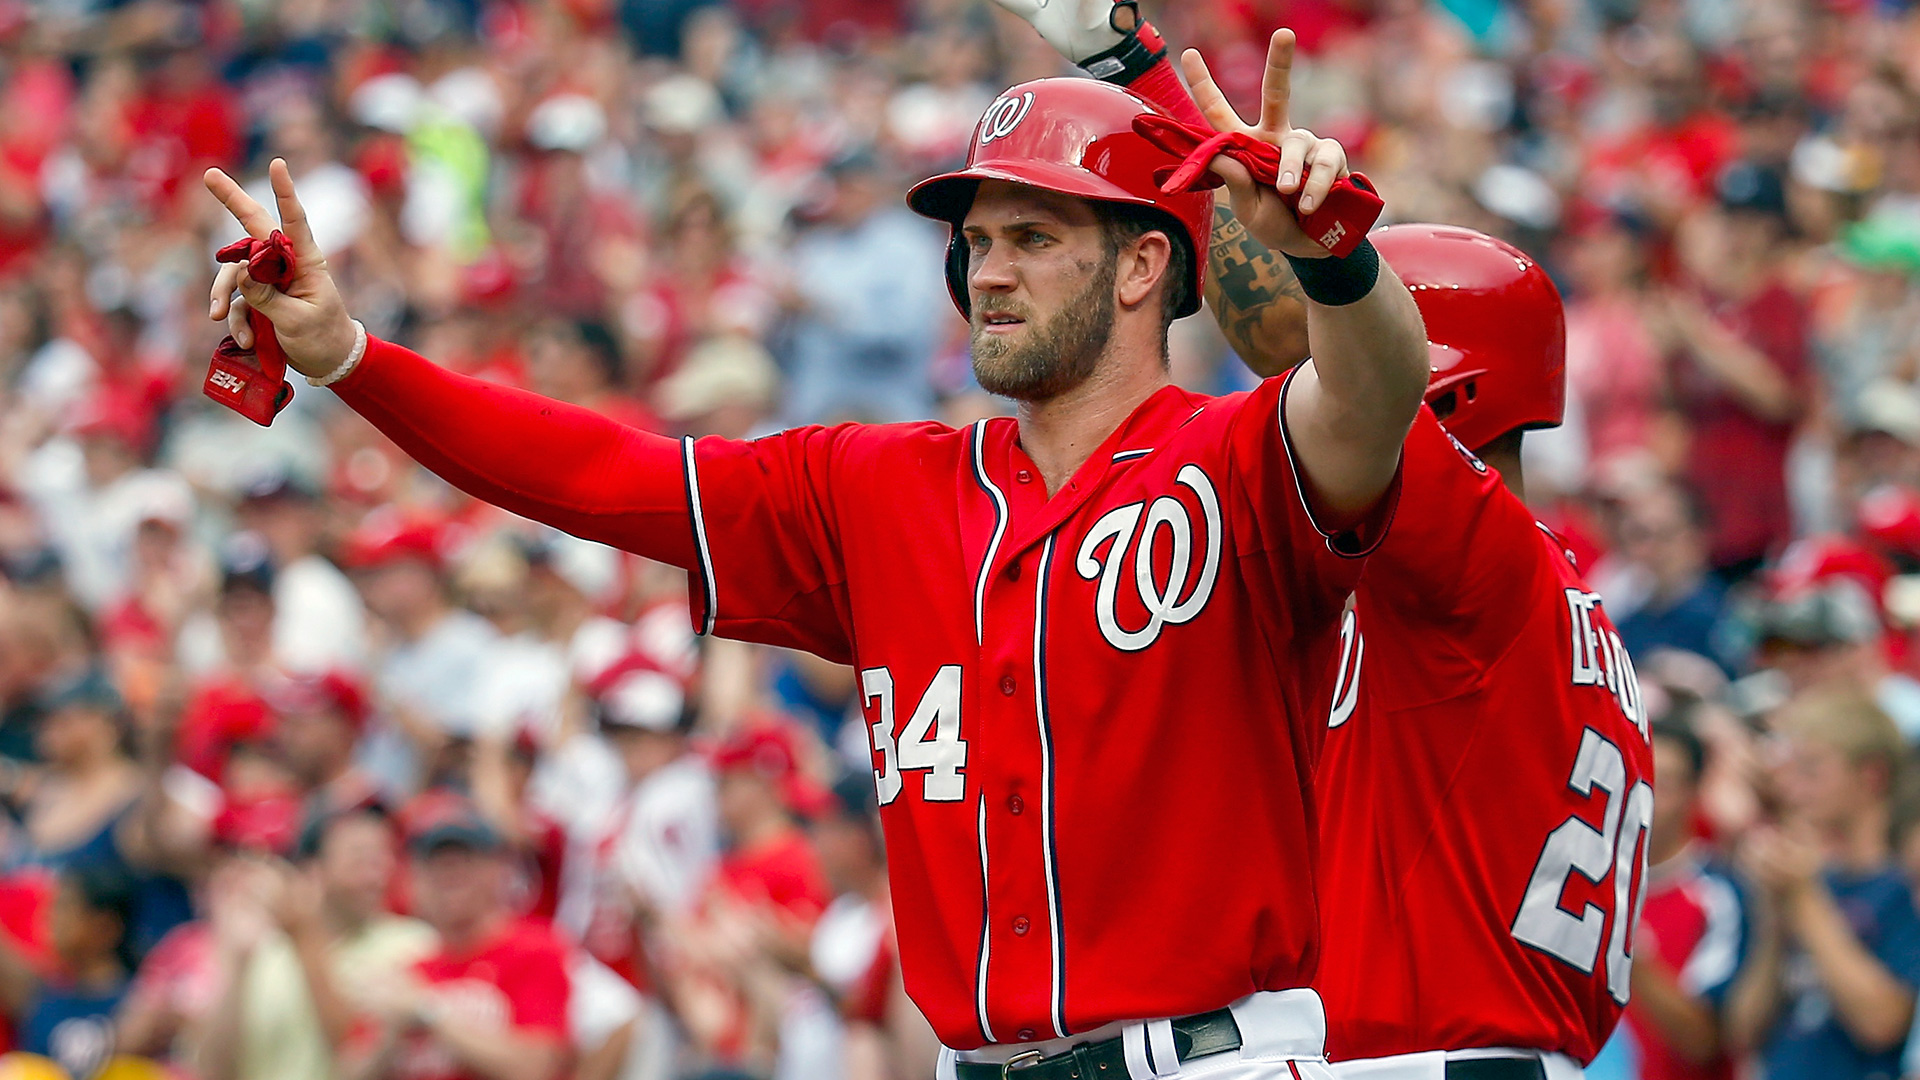 Bryce Harper celebrates with teammates after scoring a run